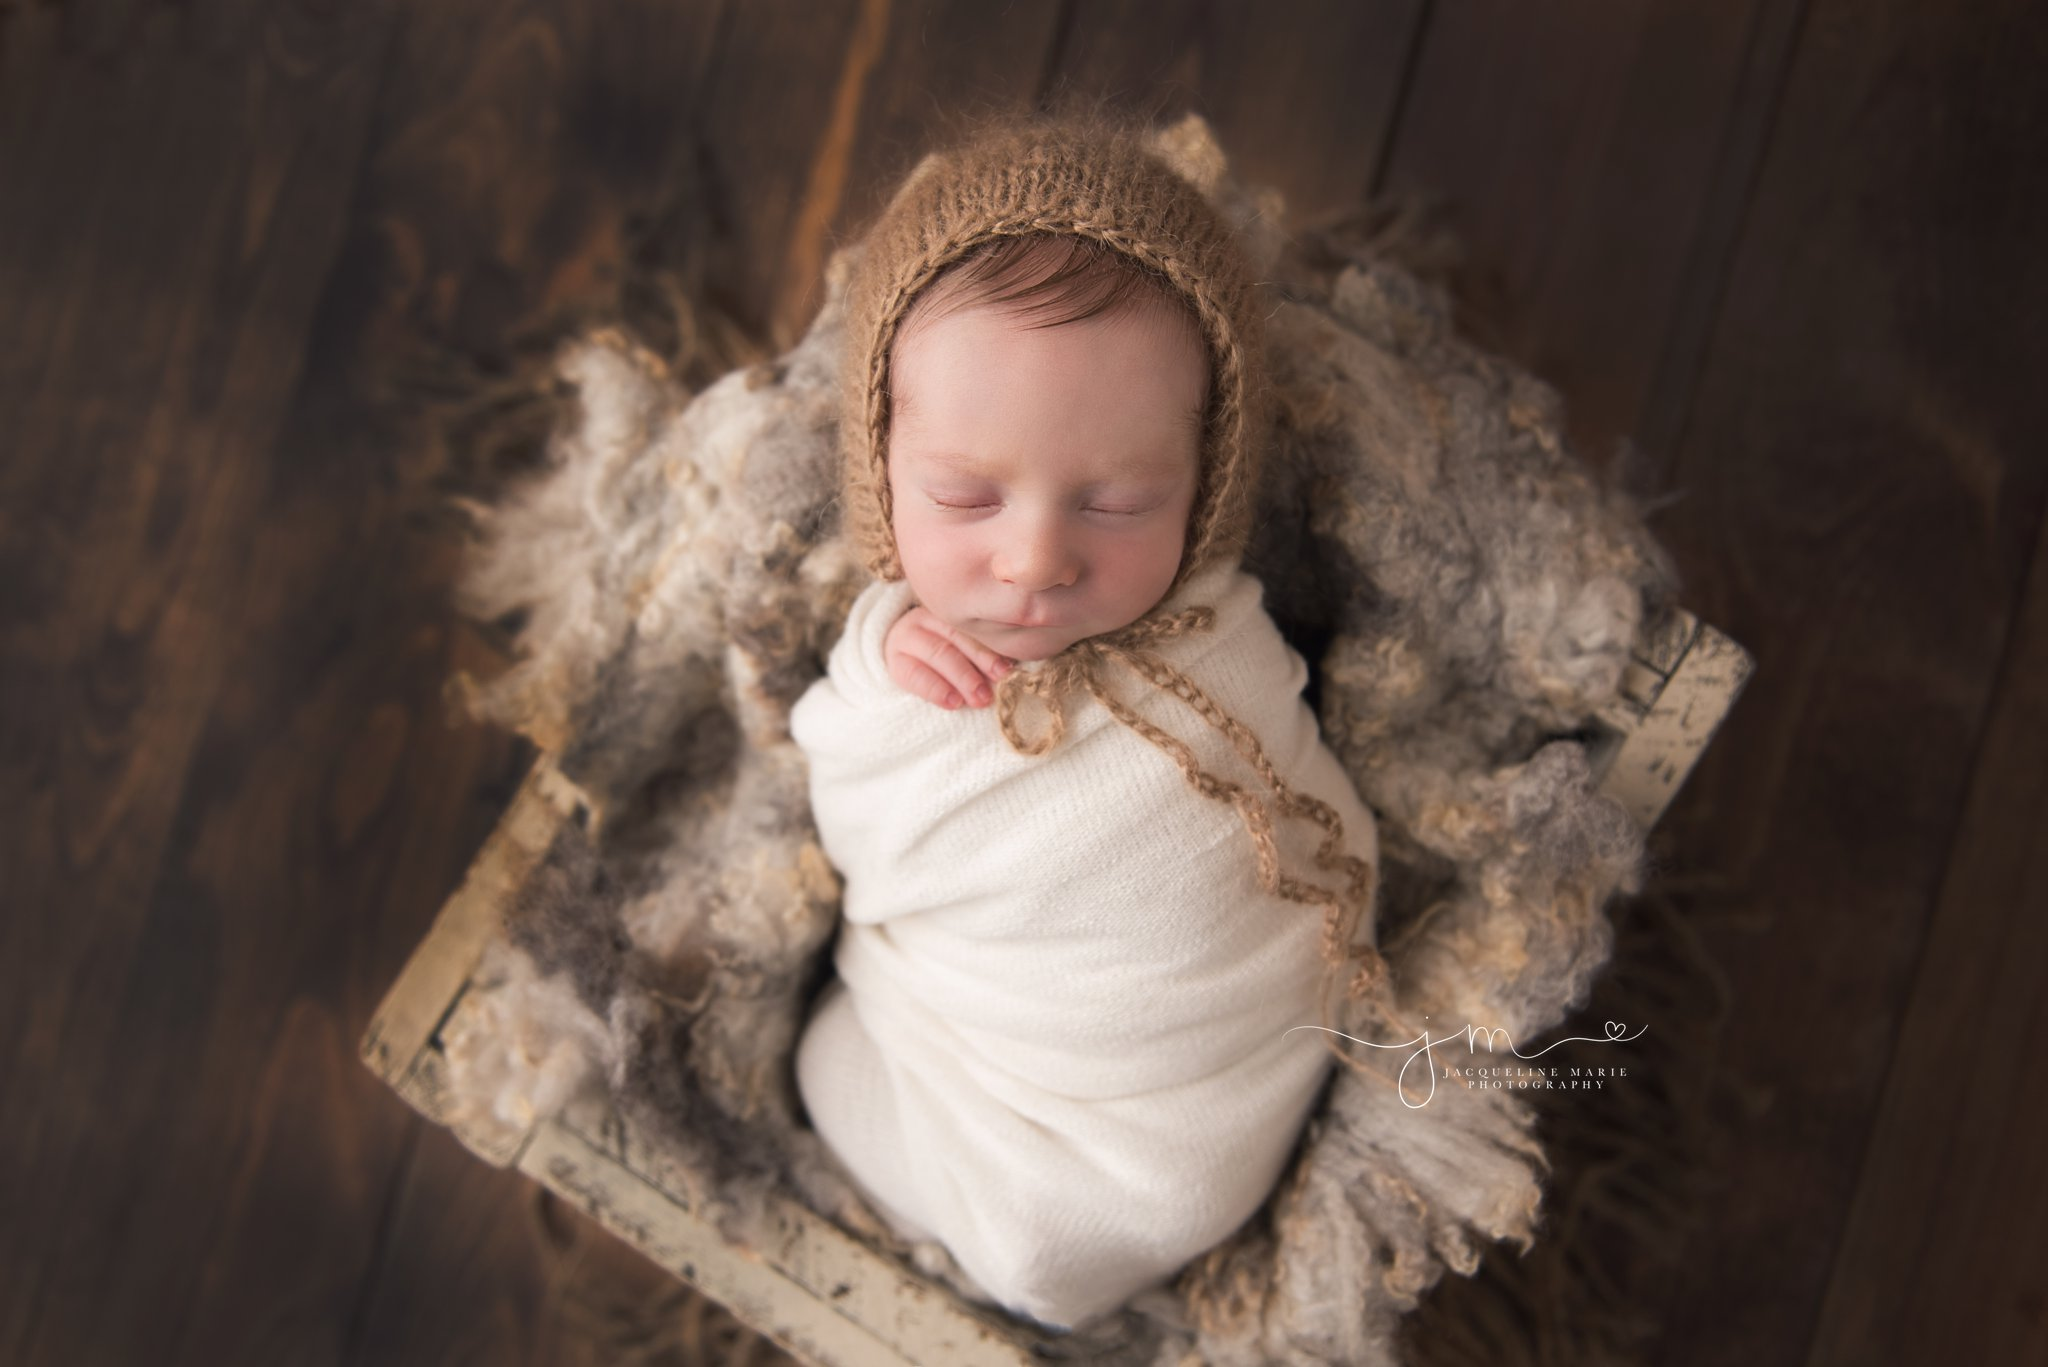 columbus ohio newborn baby boy is swaddled in cream wrap and tan bonnet for newborn pictures at jacqueline marie photography studio